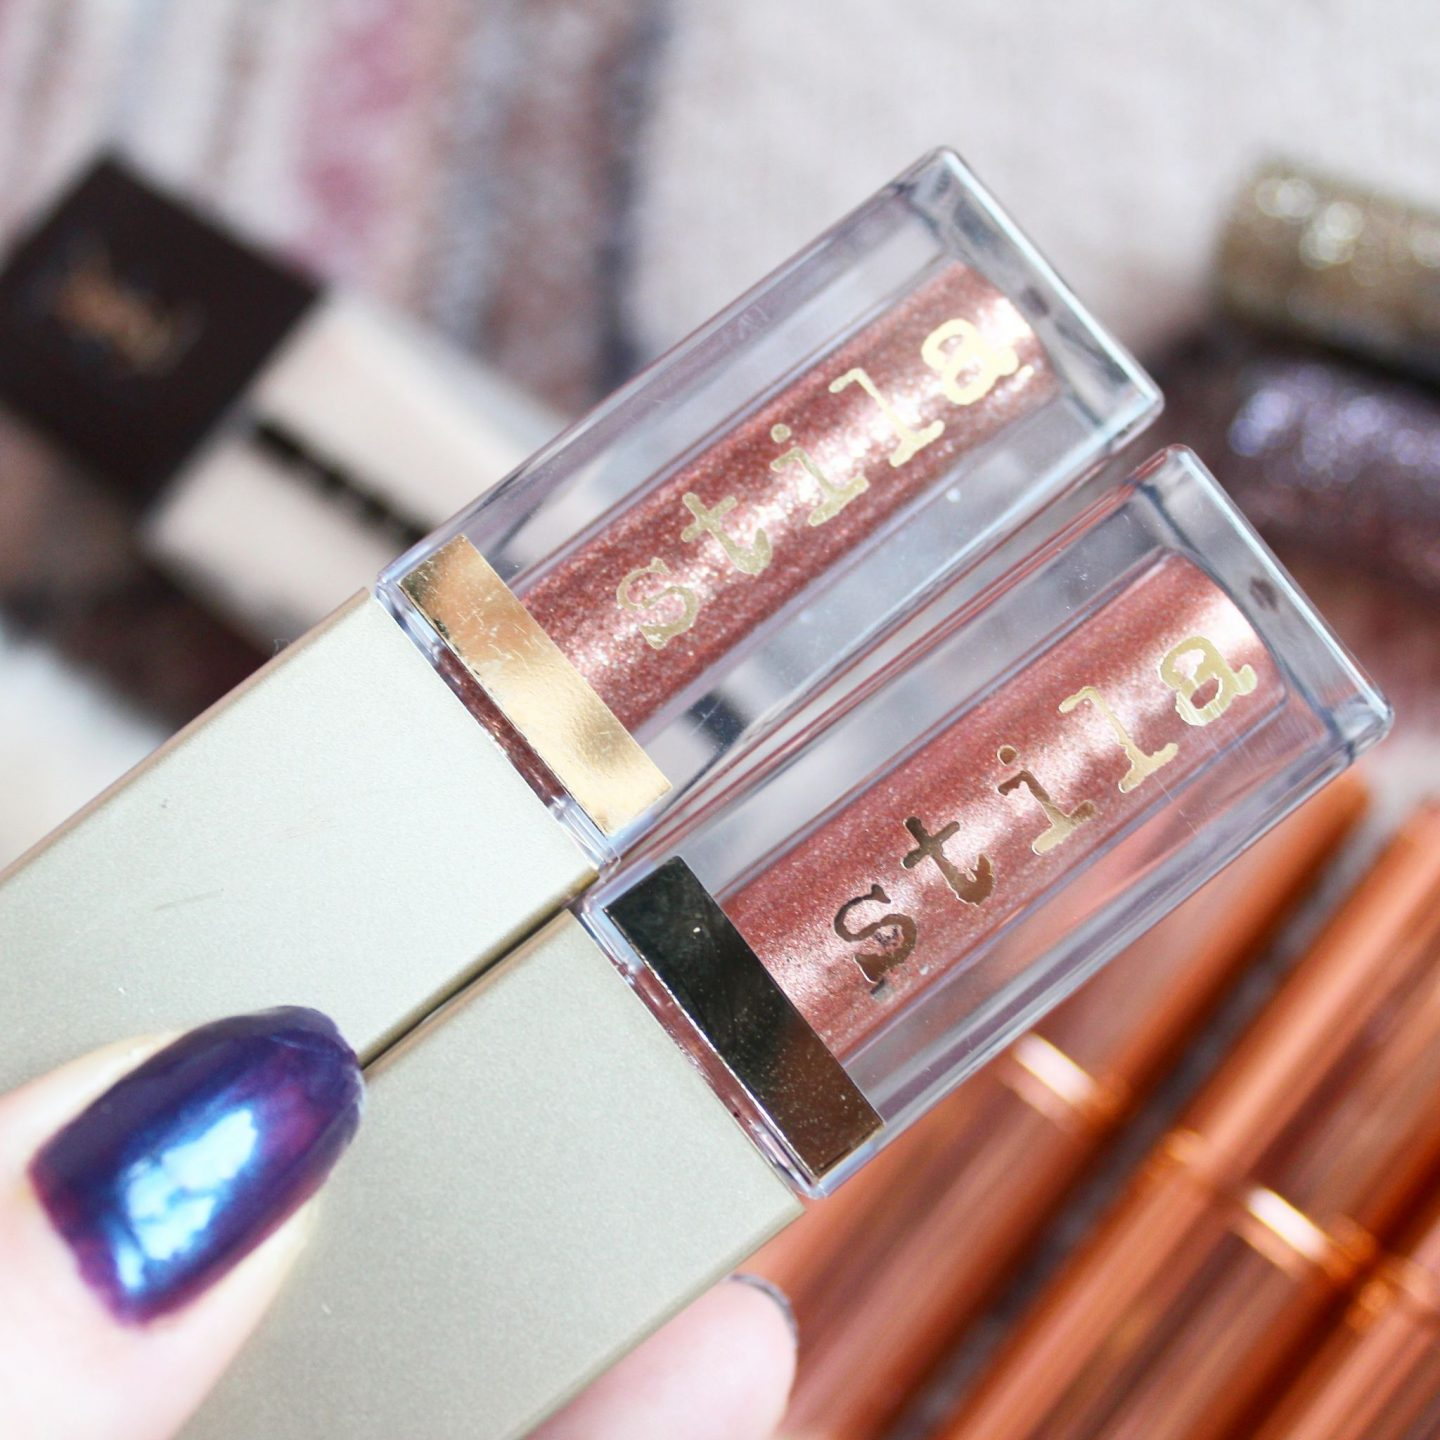 Stila Magnificent Metals Glitter & Glow Liquid Eye Shadow Collection